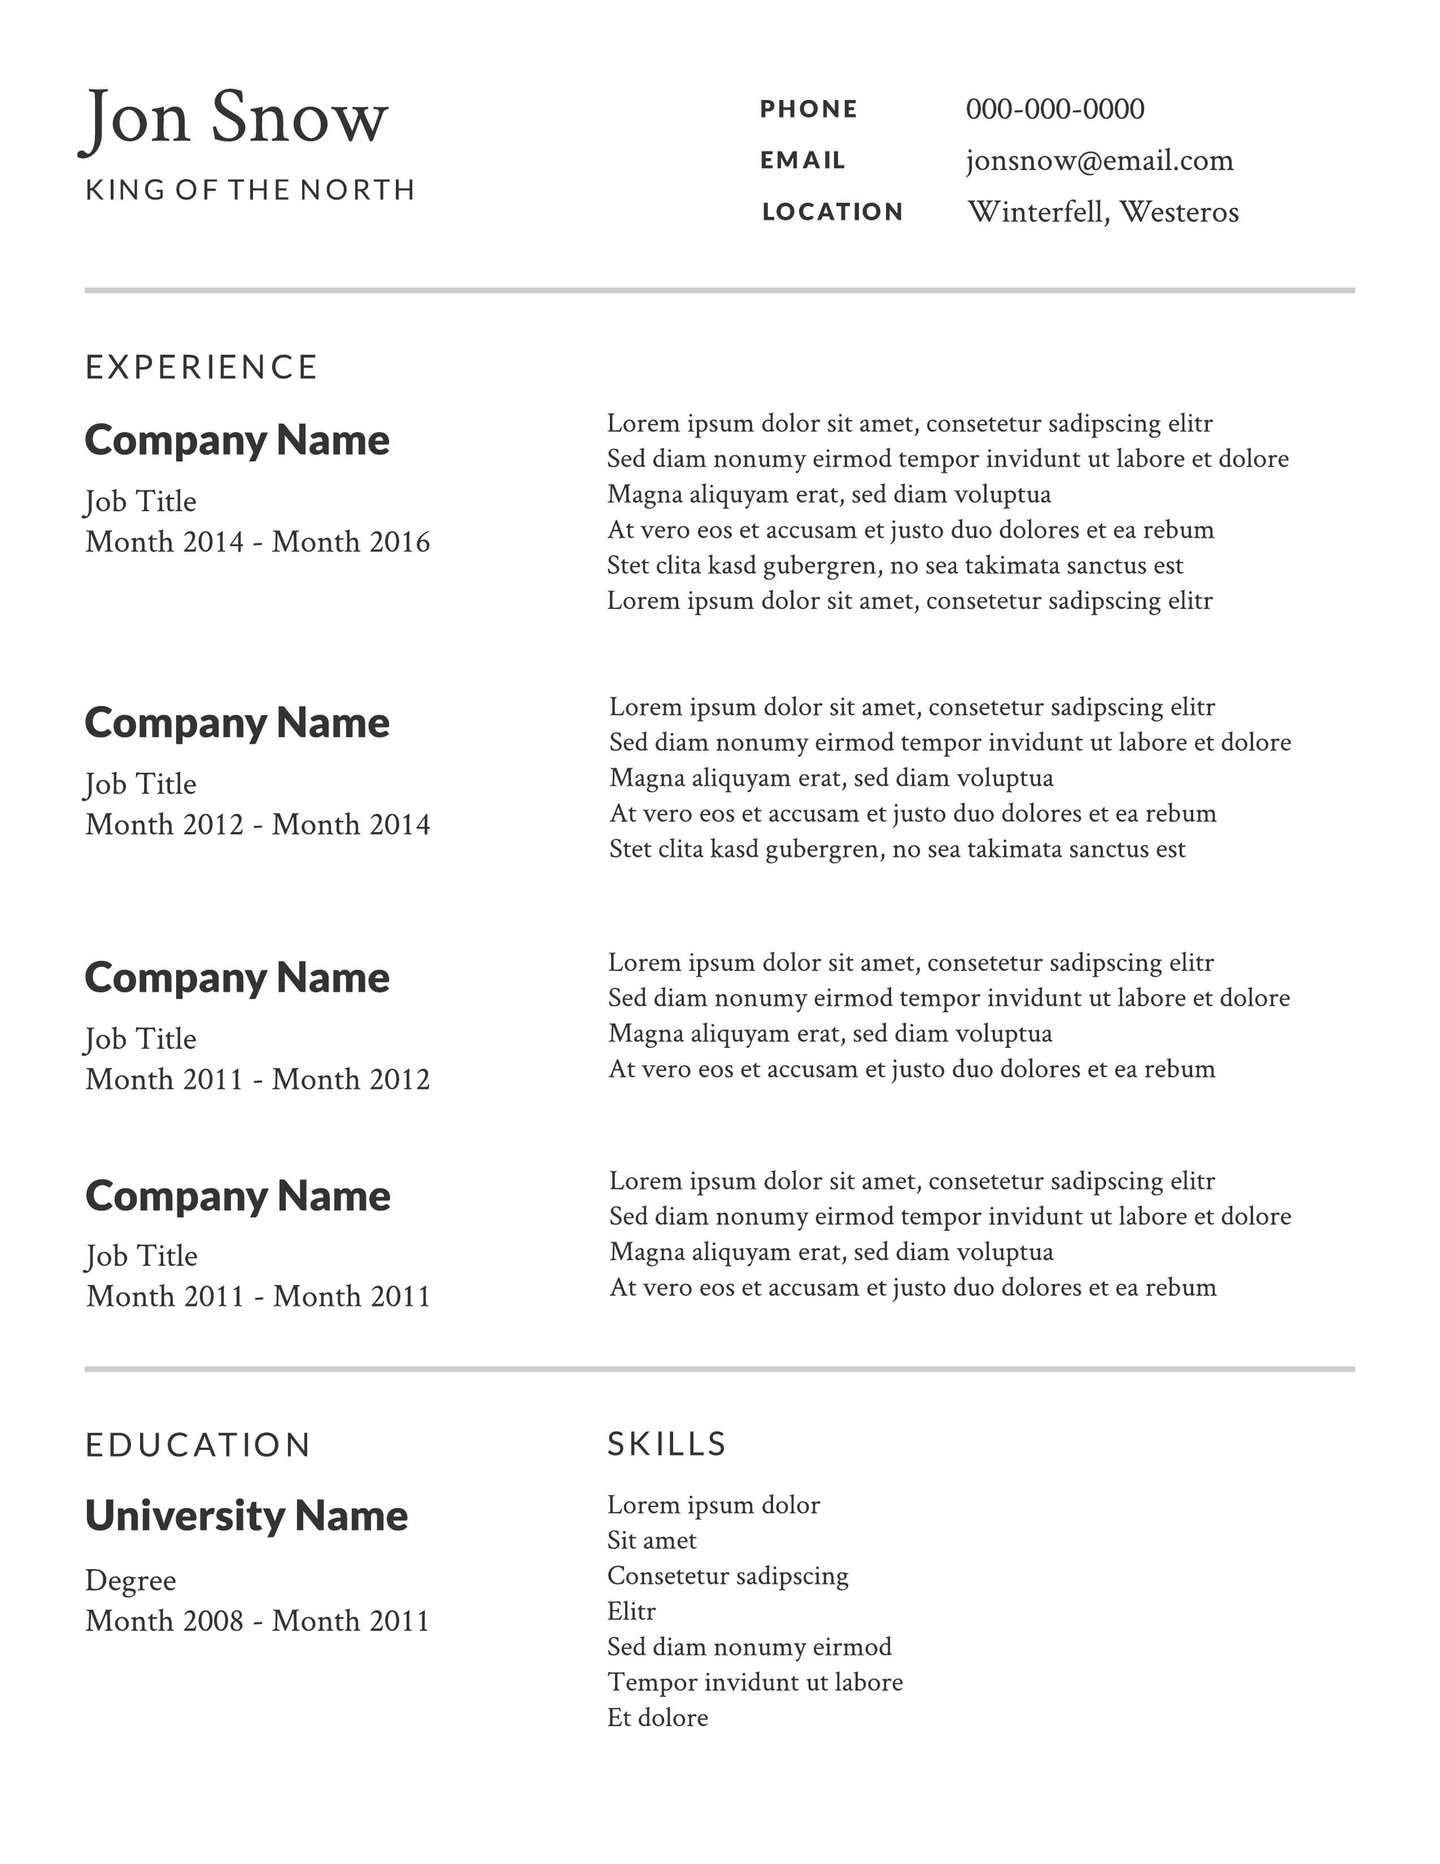 professional resume template - Look At Resumes For Free